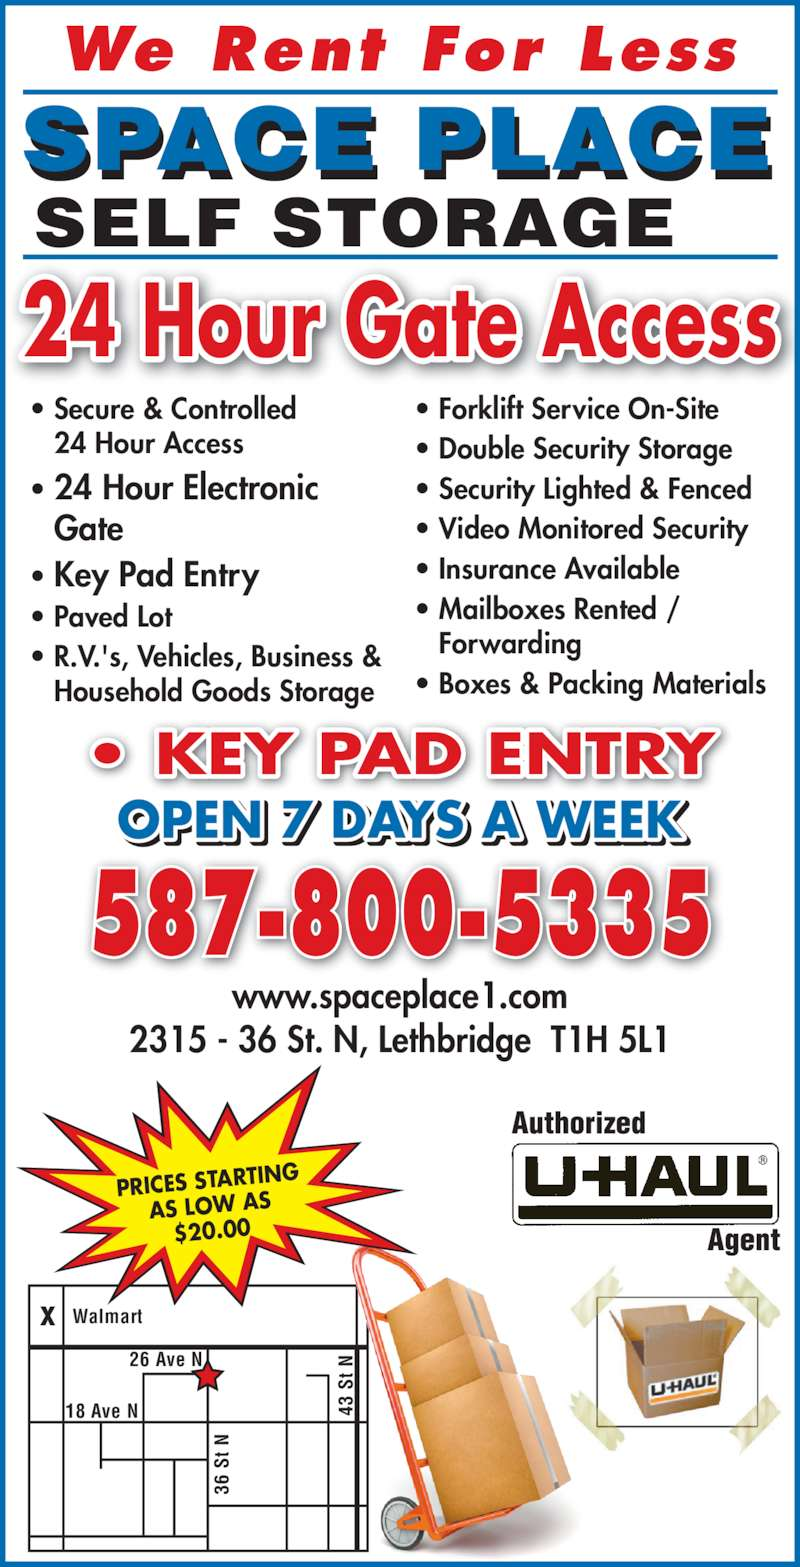 Space Place (403-320-6225) - Display Ad - ? KEY PAD ENTRY 24 Hour Gate Access SPACE PLACE SELF STORAGE 587-800-5335 OPEN 7 DAYS A WEEK 26 Ave N 43  S t N 36  S Walmartx We Rent For Less ? Secure & Controlled 24 Hour Access ? 24 Hour Electronic  Gate ? Key Pad Entry ? Paved Lot ? R.V.'s, Vehicles, Business &  Household Goods Storage ? Forklift Service On-Site t N ? Double Security Storage ? Security Lighted & Fenced ? Video Monitored Security ? Insurance Available ? Mailboxes Rented / Forwarding ? Boxes & Packing Materials www.spaceplace1.com 2315 - 36 St. N, Lethbridge  T1H 5L1 PRICES STARTIN AS LOW AS $20.00 18 Ave N